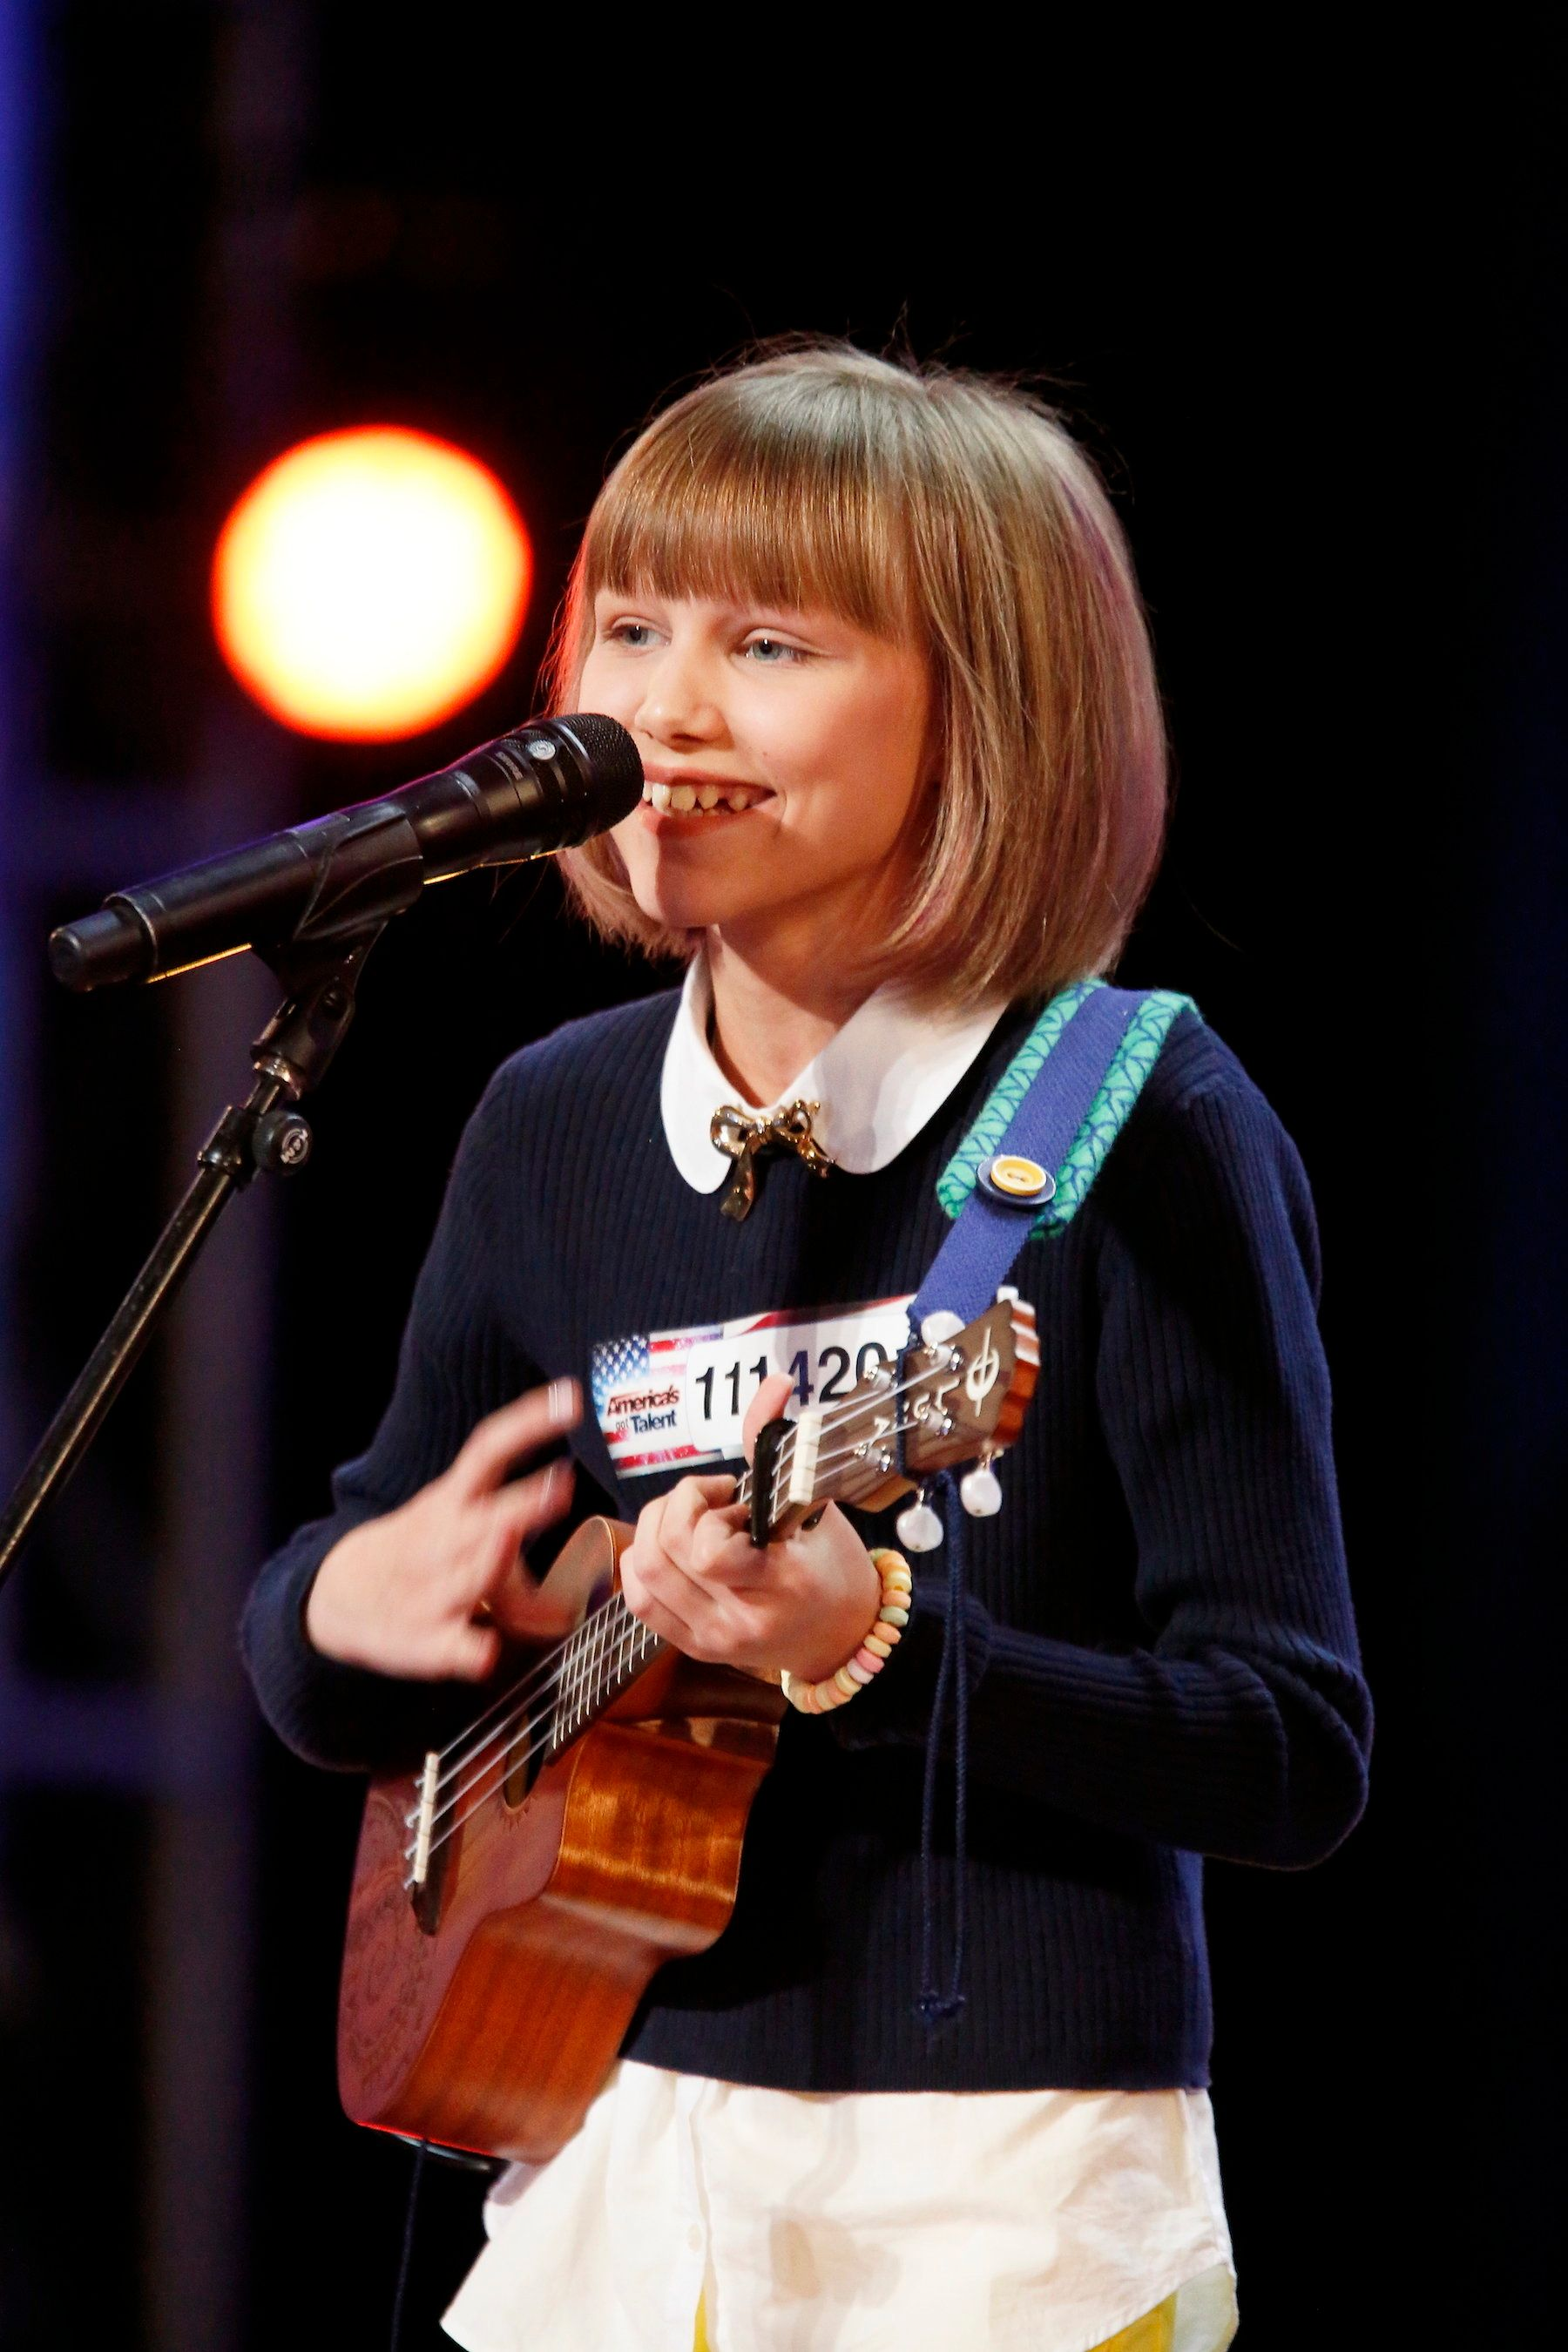 This 12-Year-Old Ukulele Player Might Just Be The Next Taylor